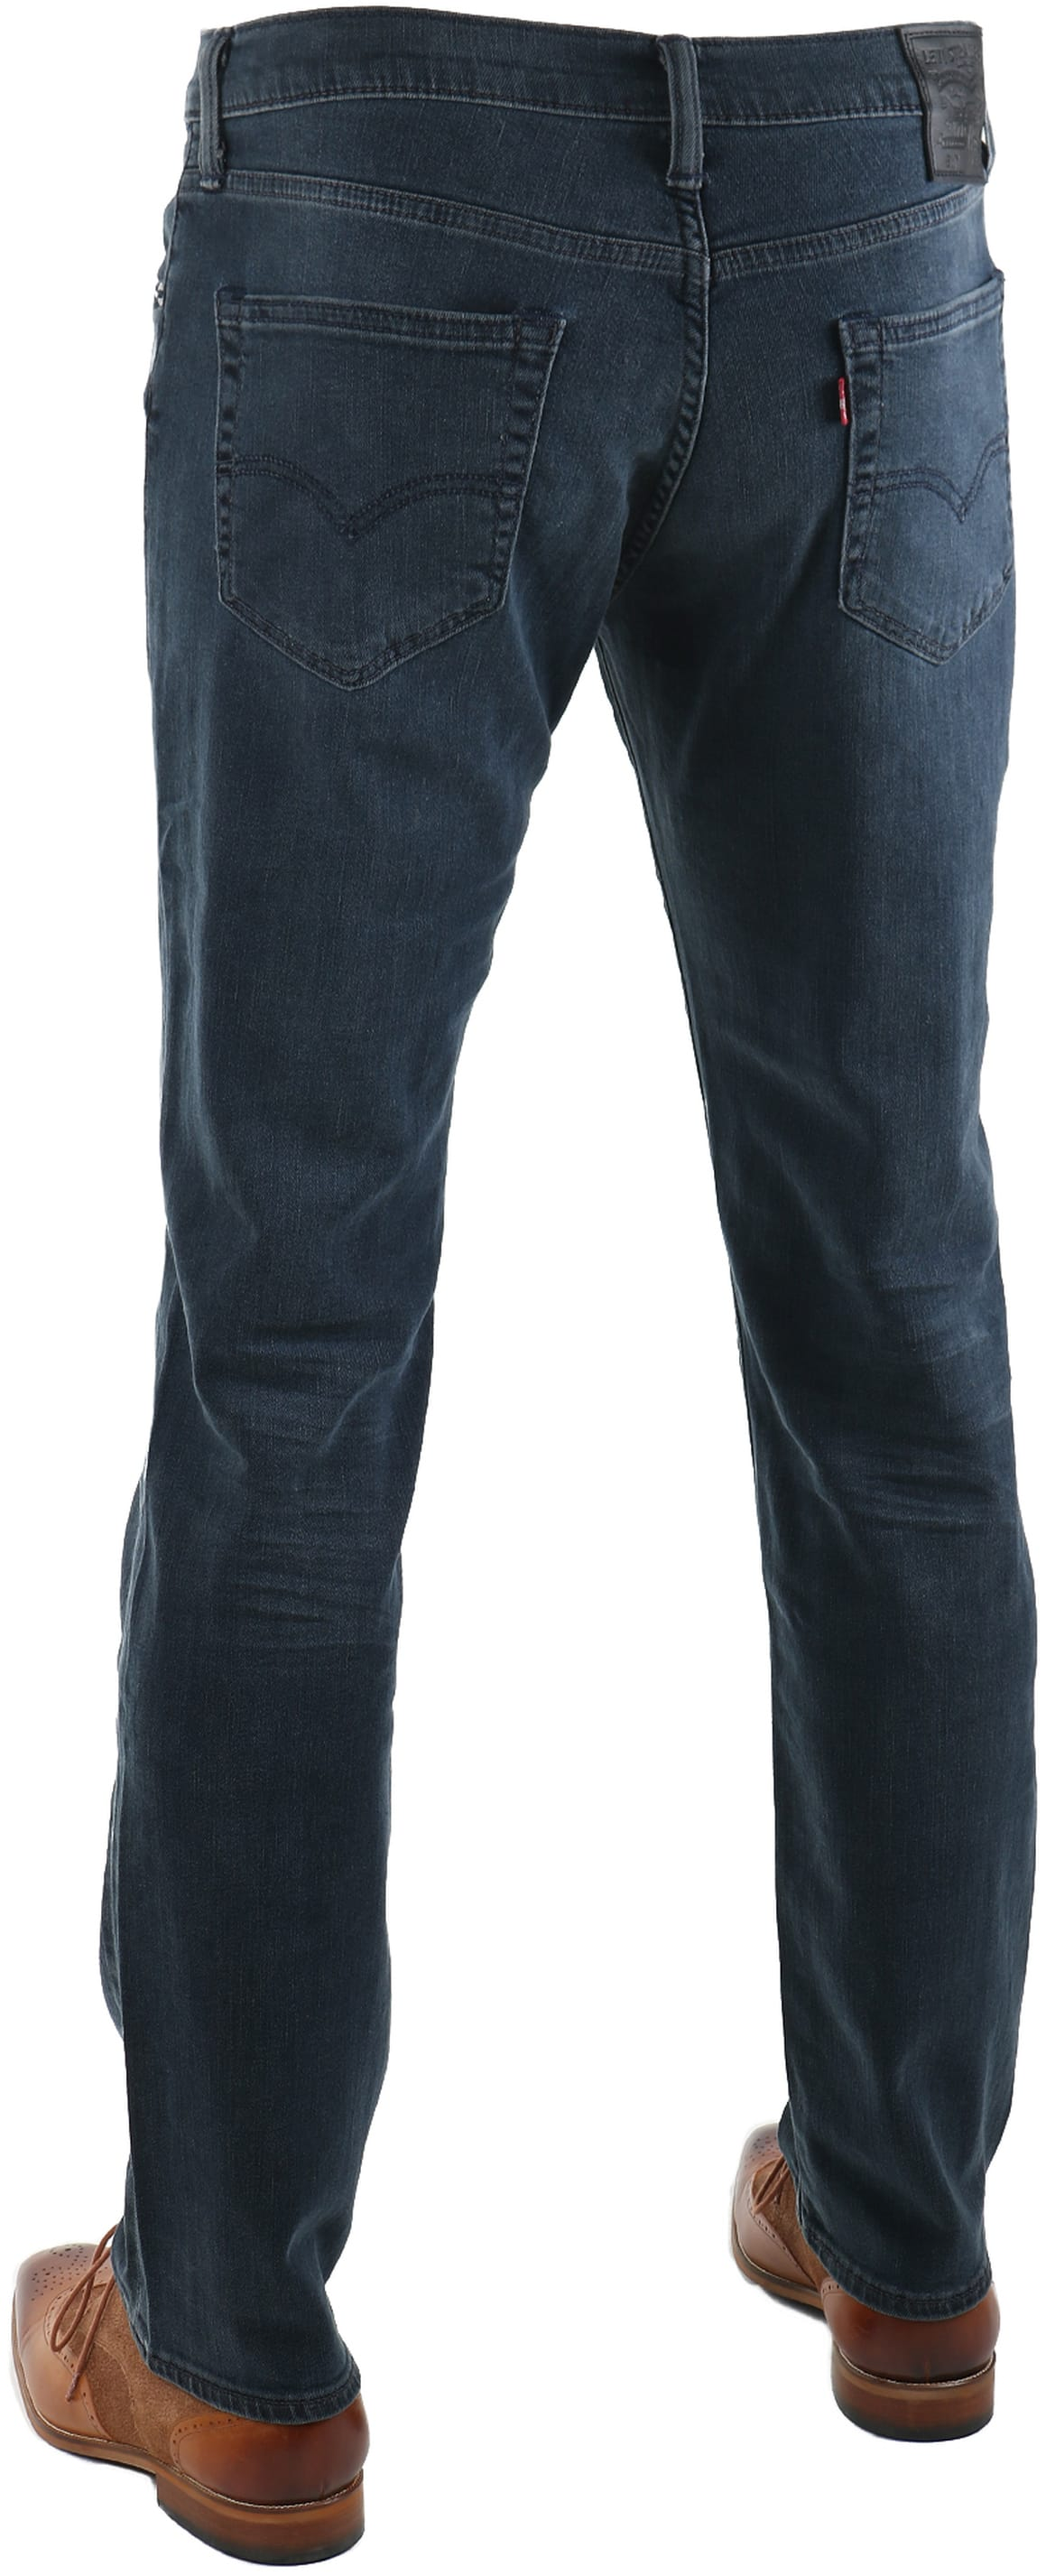 Levi's 511 Jeans Slim Fit Headed South 2090 foto 1